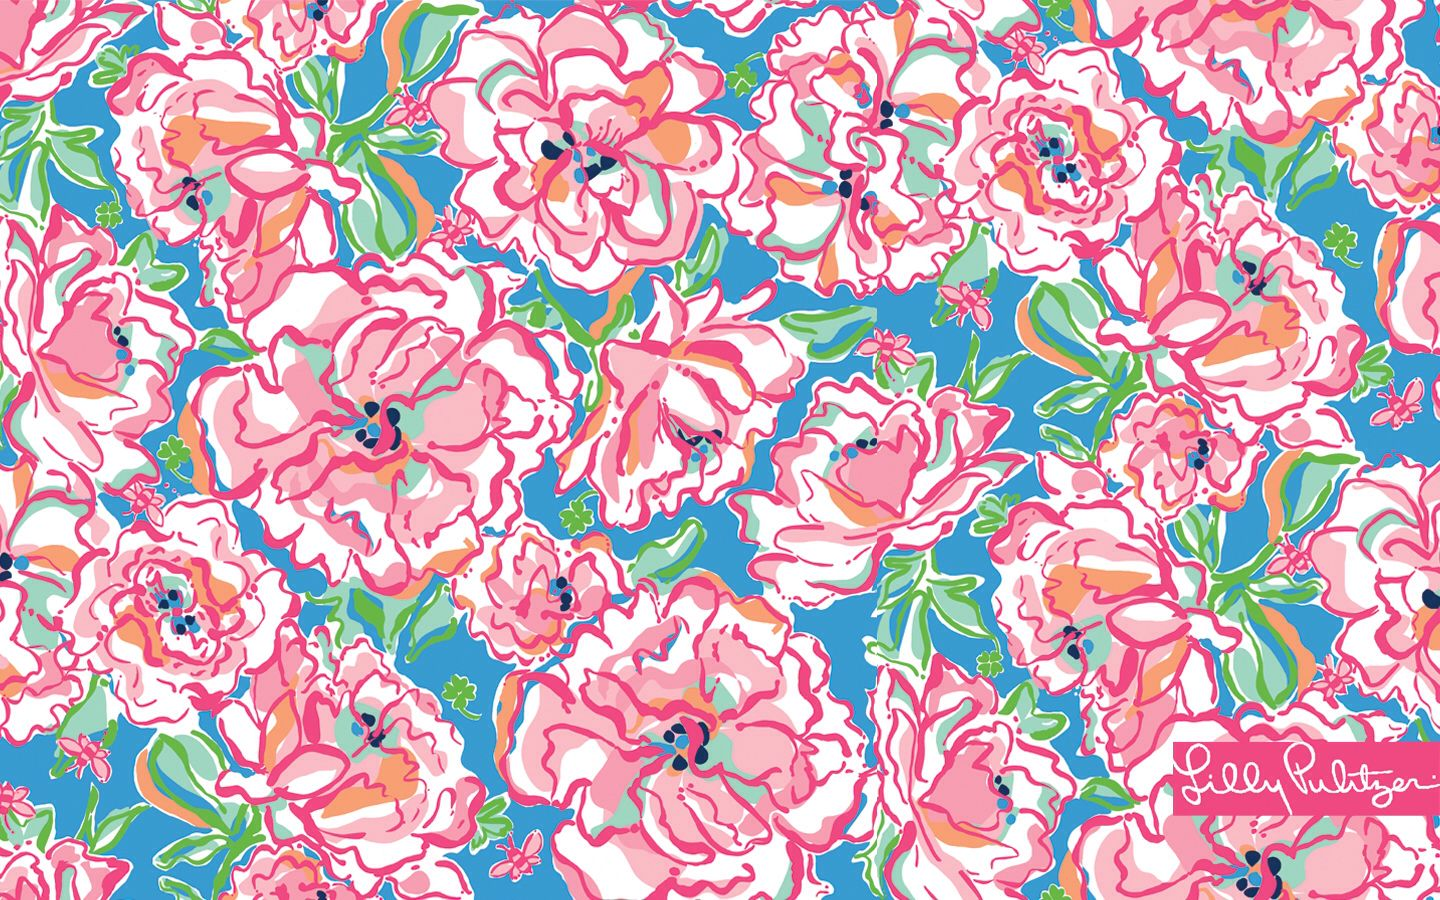 lilly pulitzer background phone wallpapers pinterest. Black Bedroom Furniture Sets. Home Design Ideas